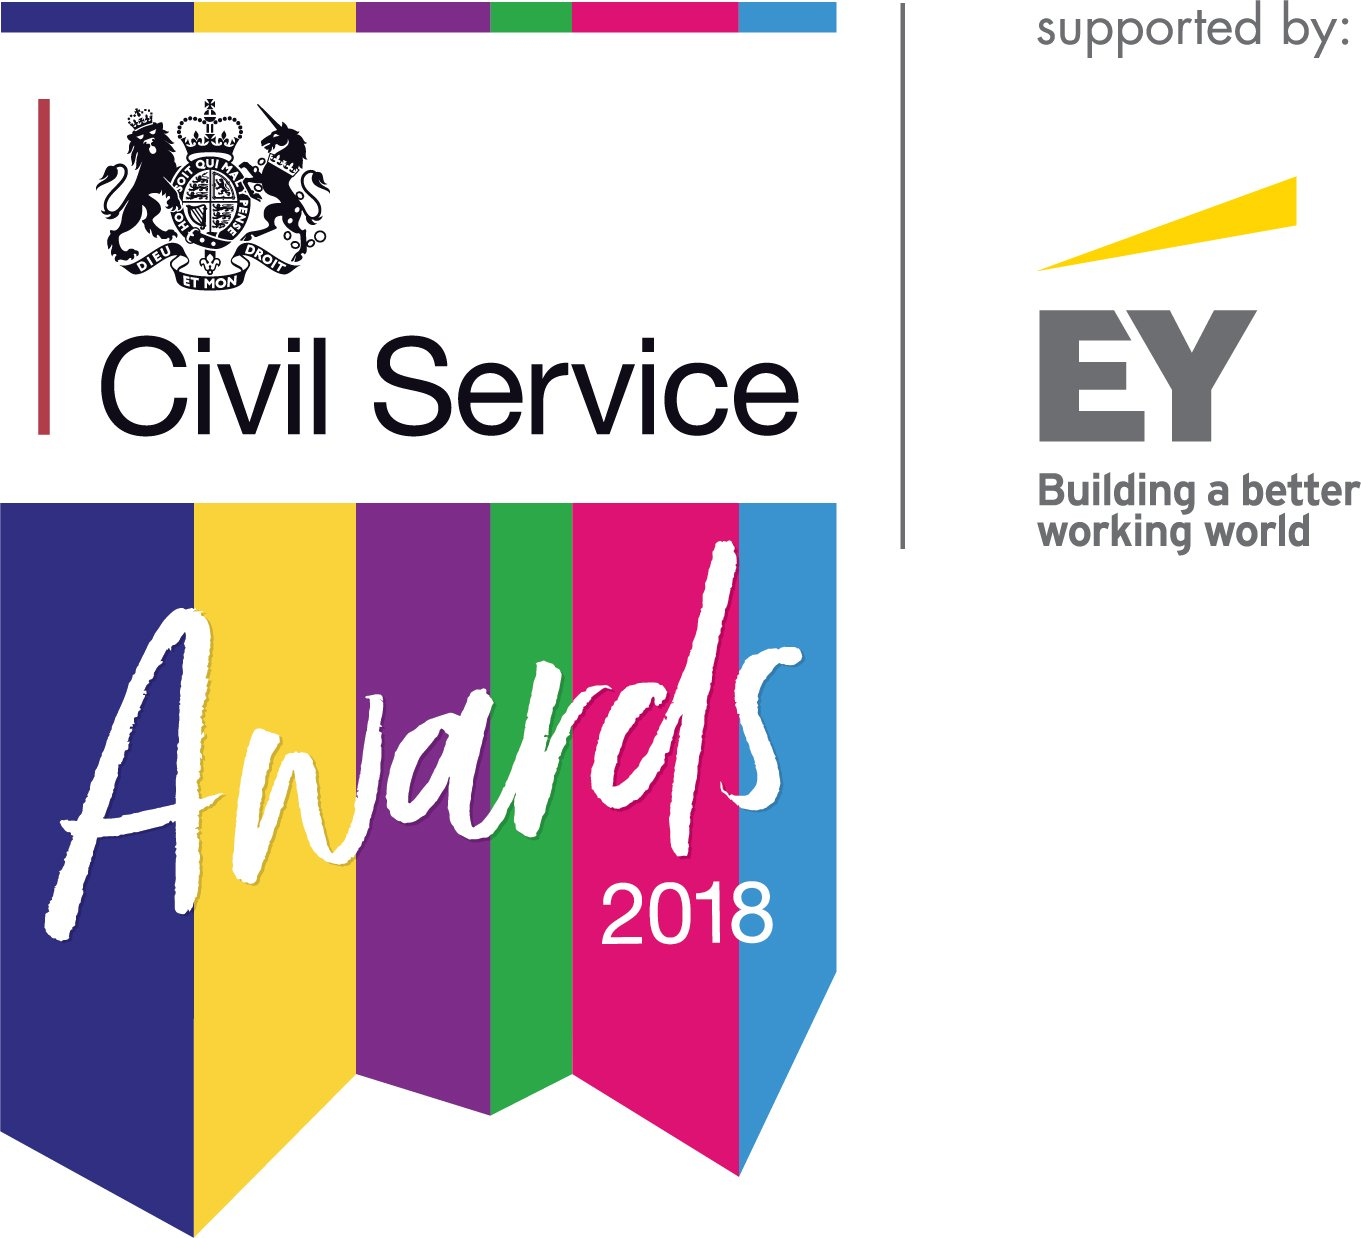 Civil Service Awards 2018   Prestigious cross-government programme to recognise the wealth of inspirational individuals